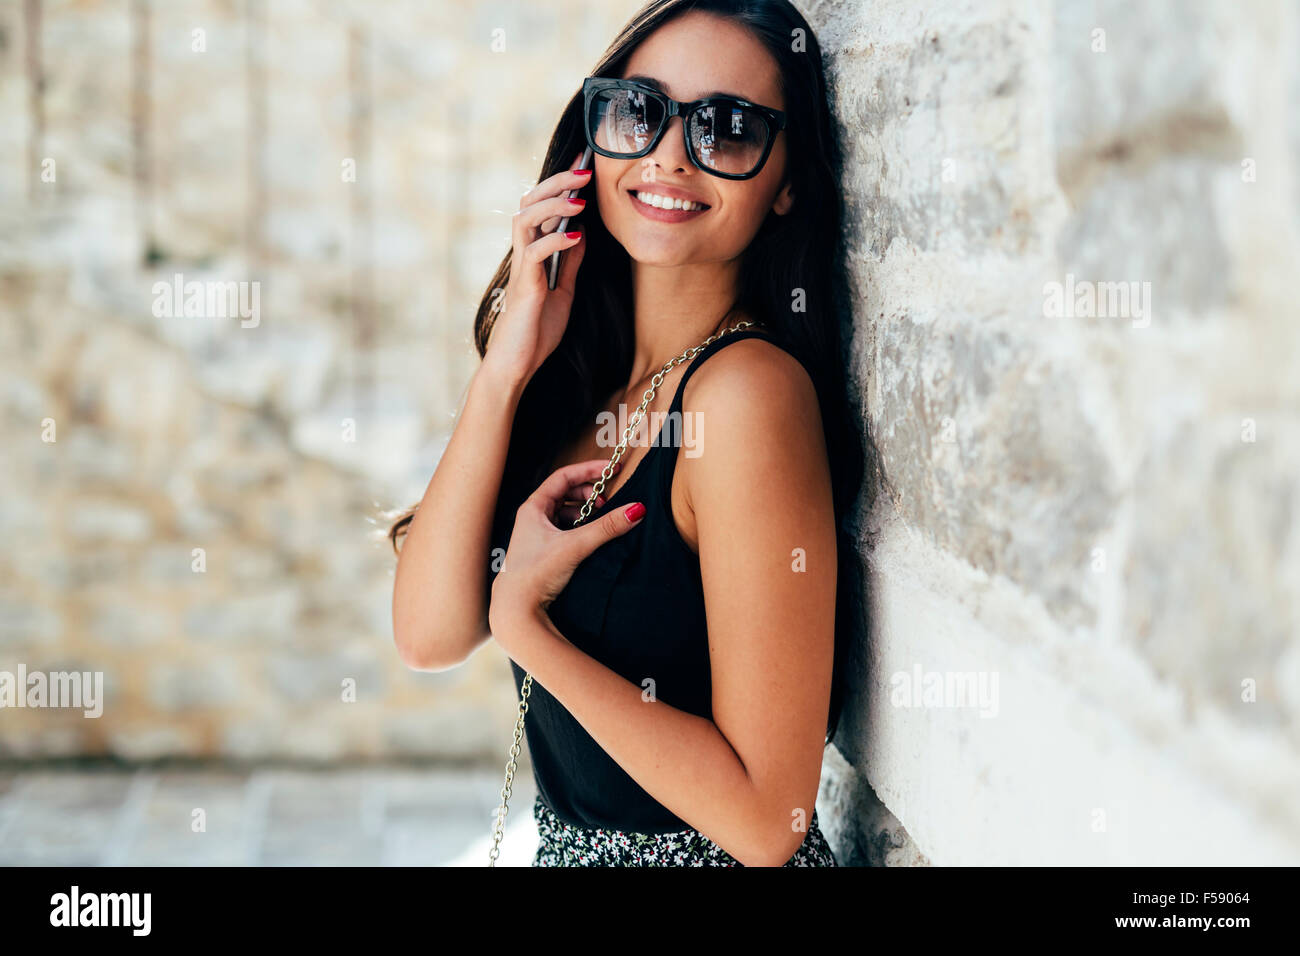 Beautiful fashion model using phone in summer outdoor - Stock Image